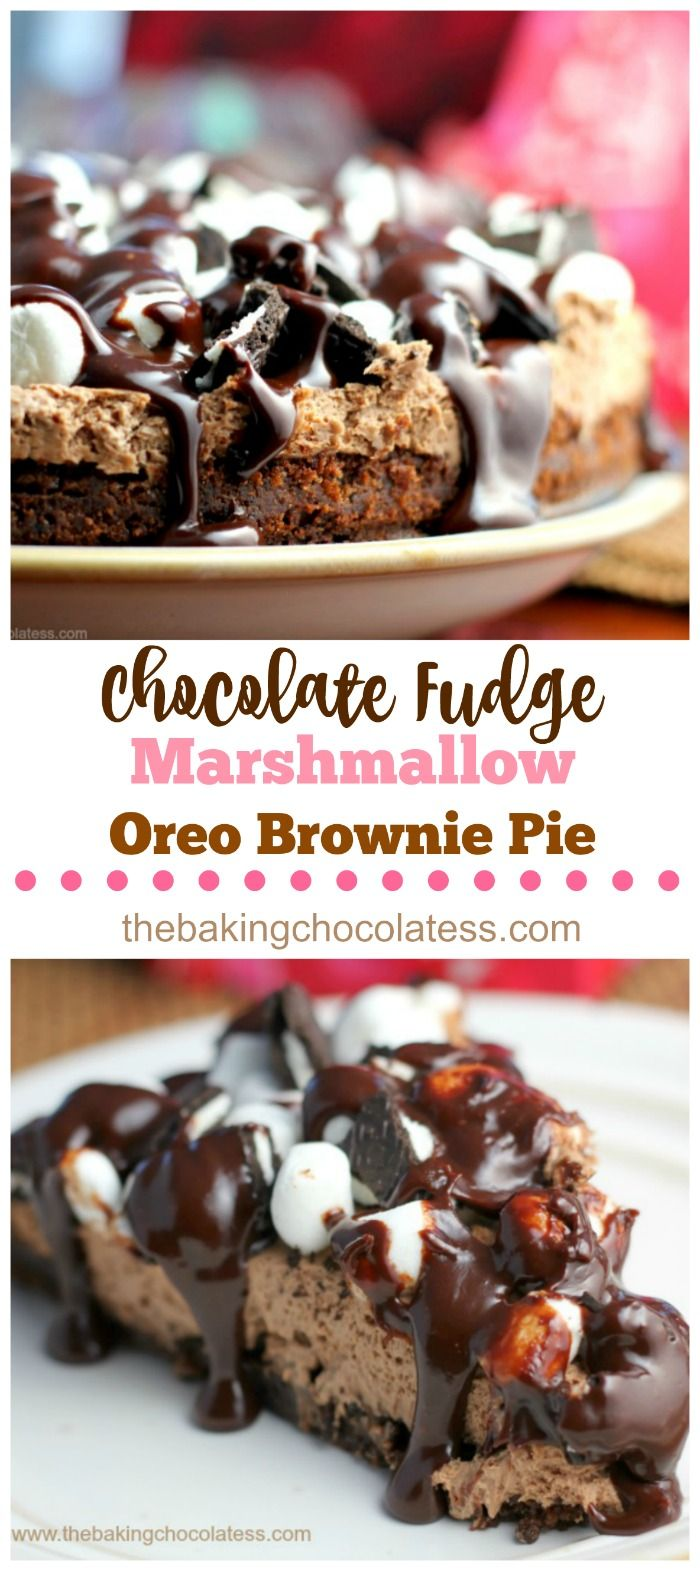 Deser williams pictures to pin on pinterest - Chocolate Fudge Marshmallow Oreo Brownie Pie